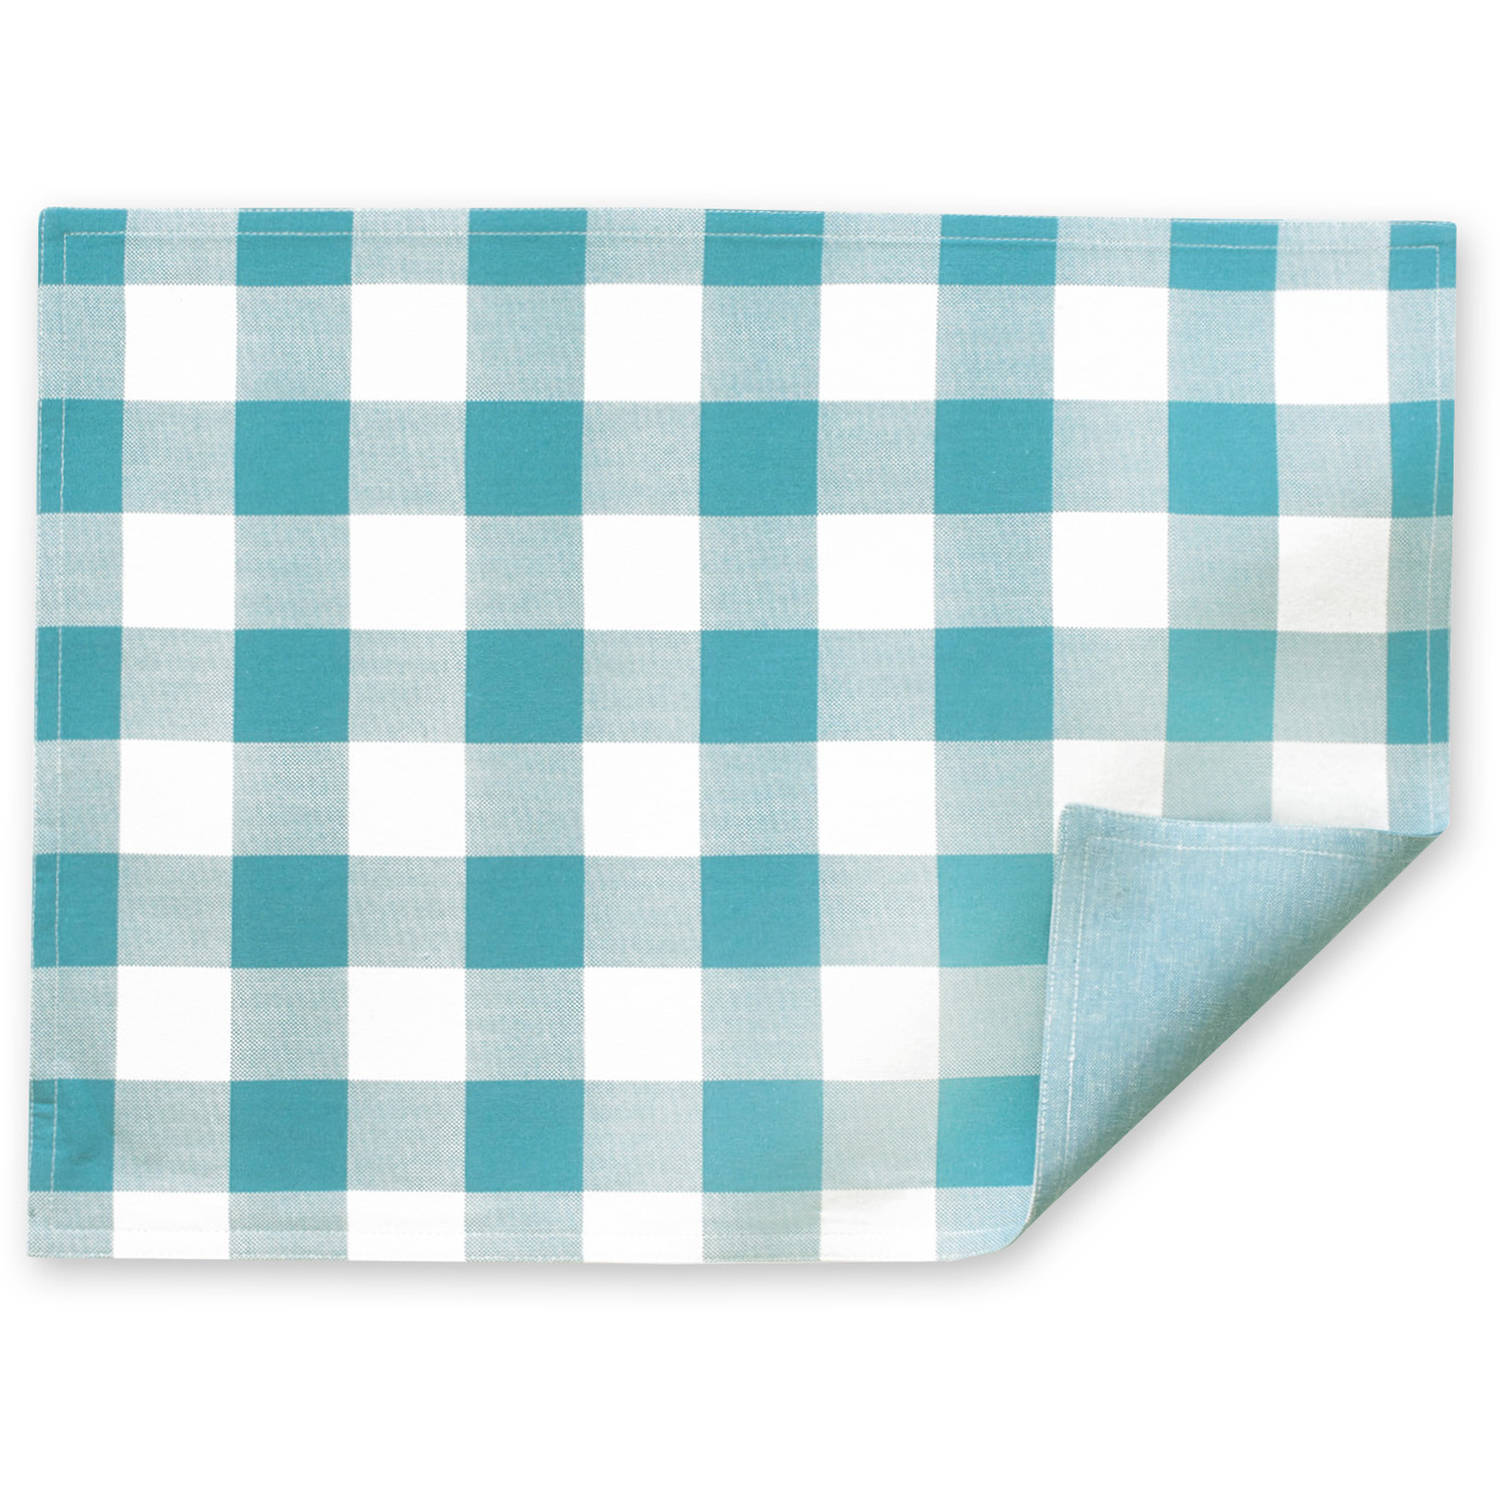 The Pioneer Woman Charming Check Placemat, Teal